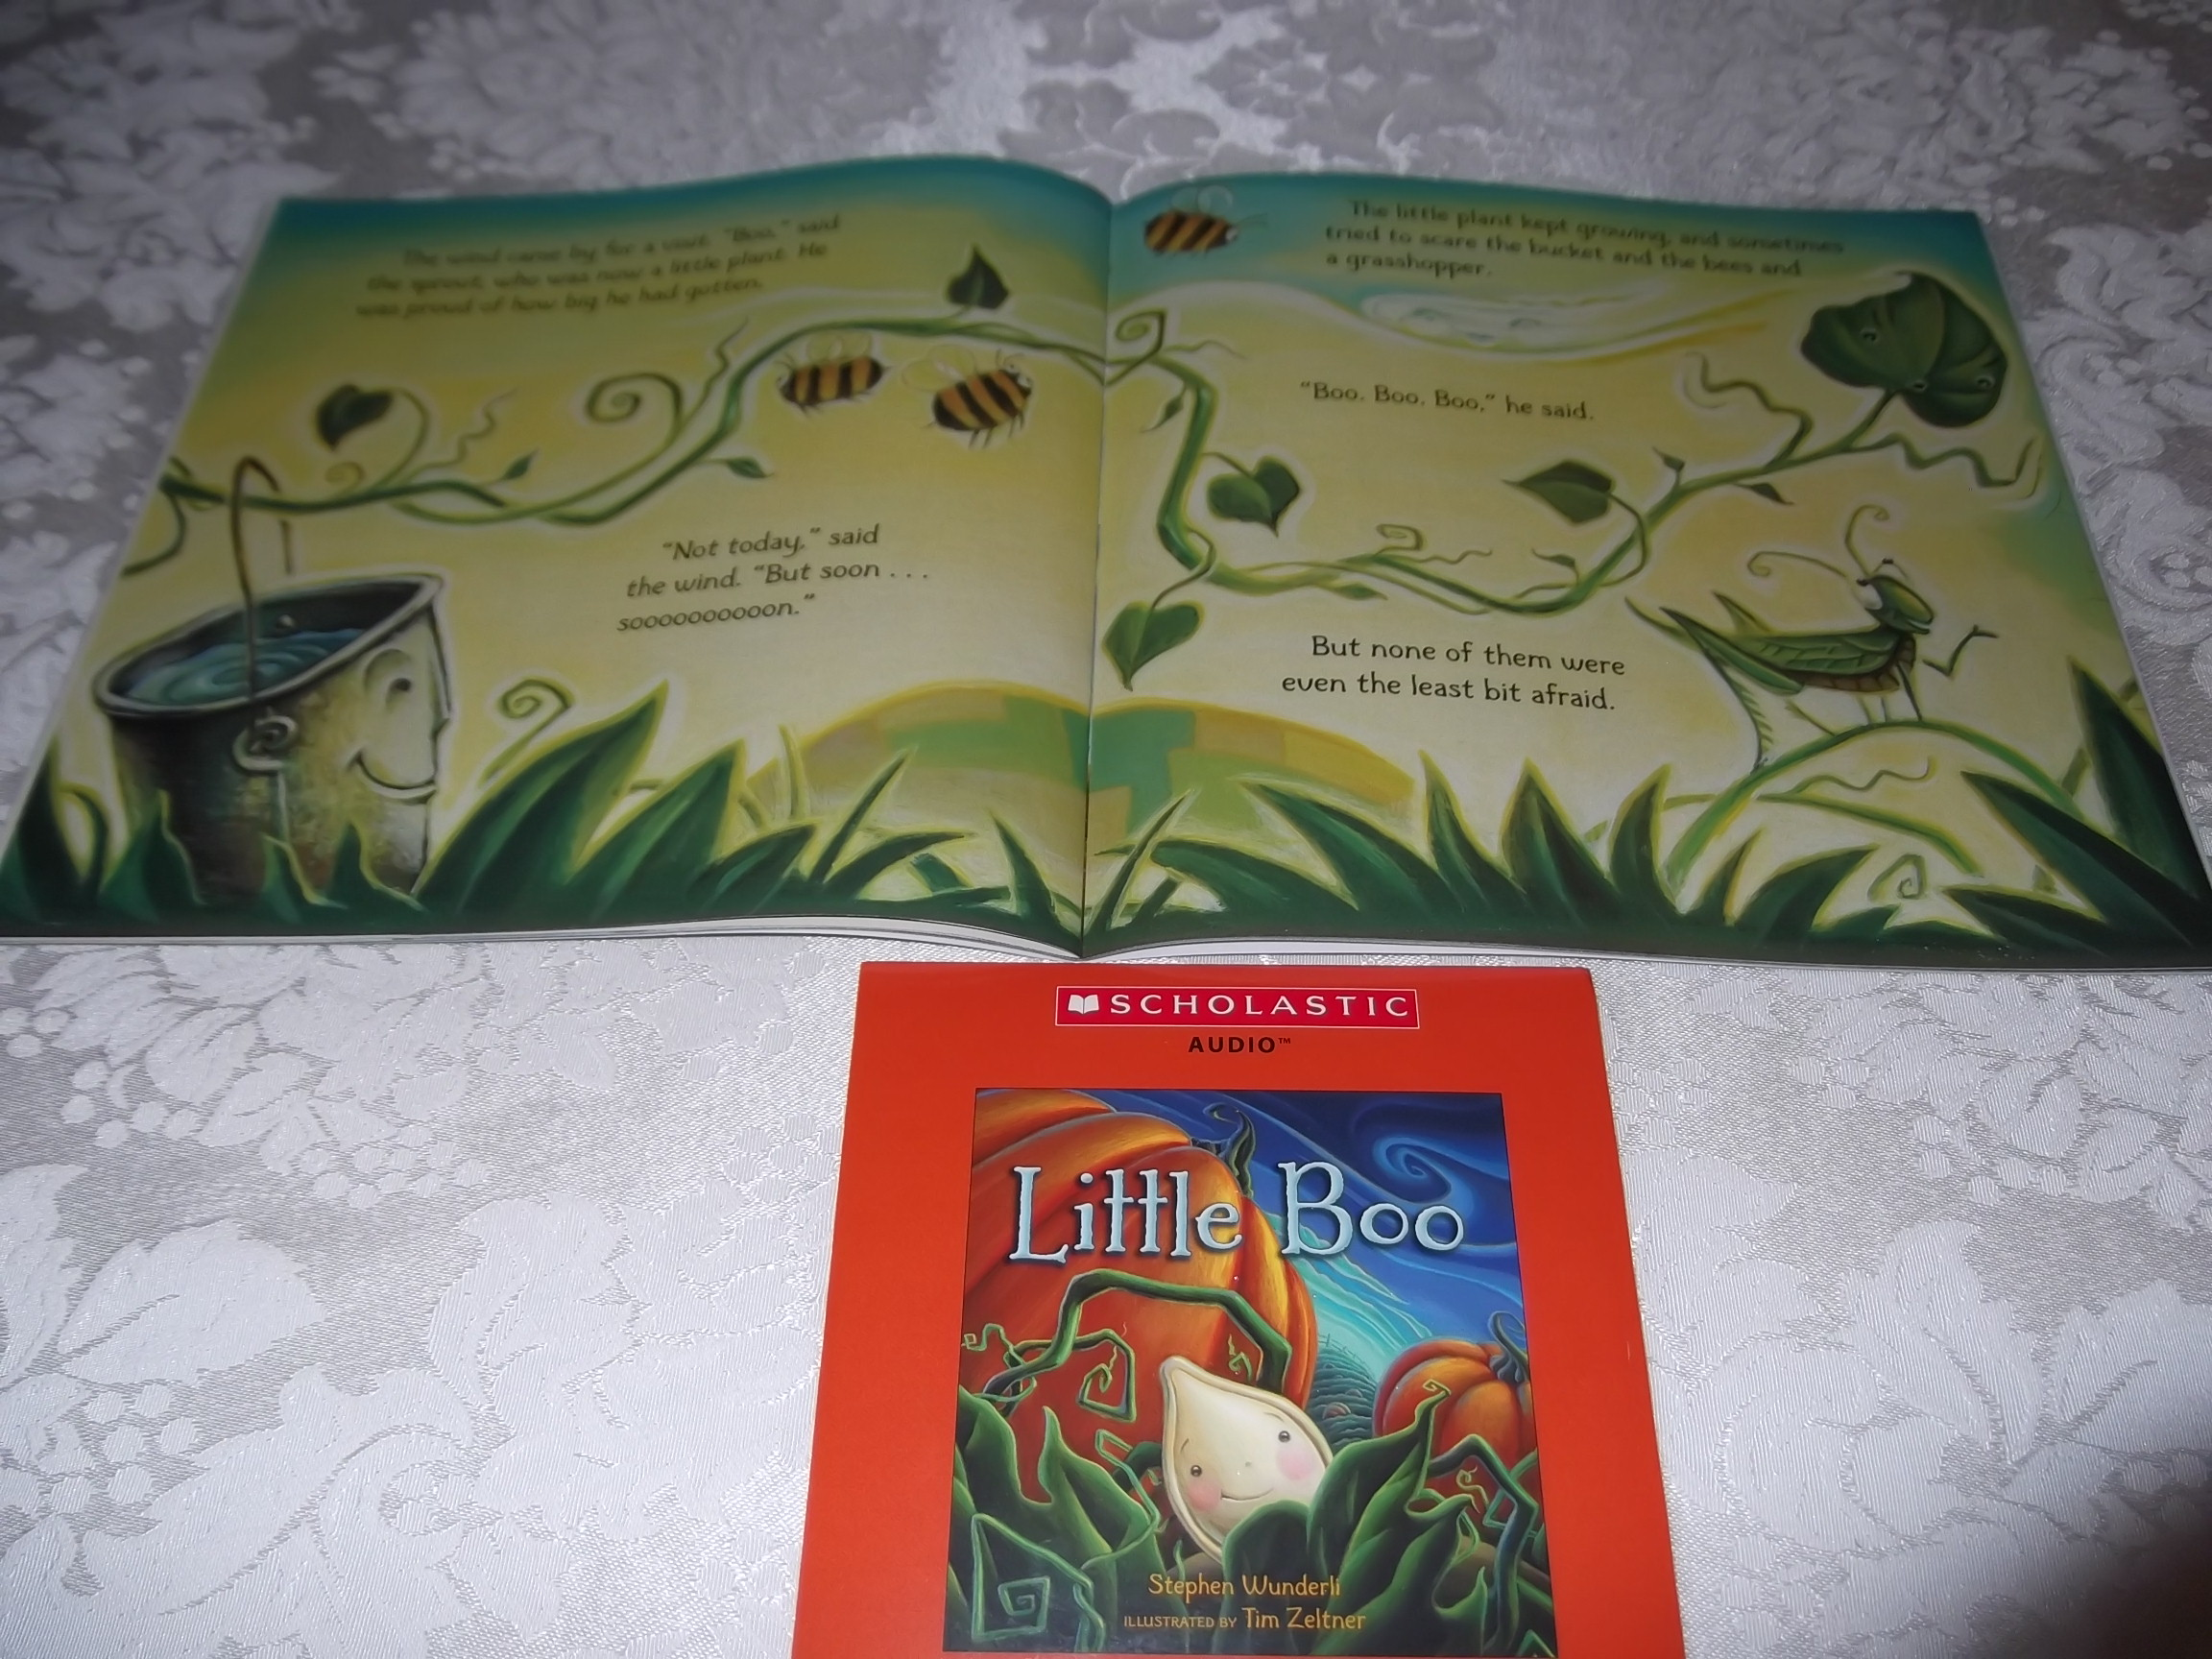 Image 2 of Little Boo Stephen Wunderli Audio CD & SC Brand New